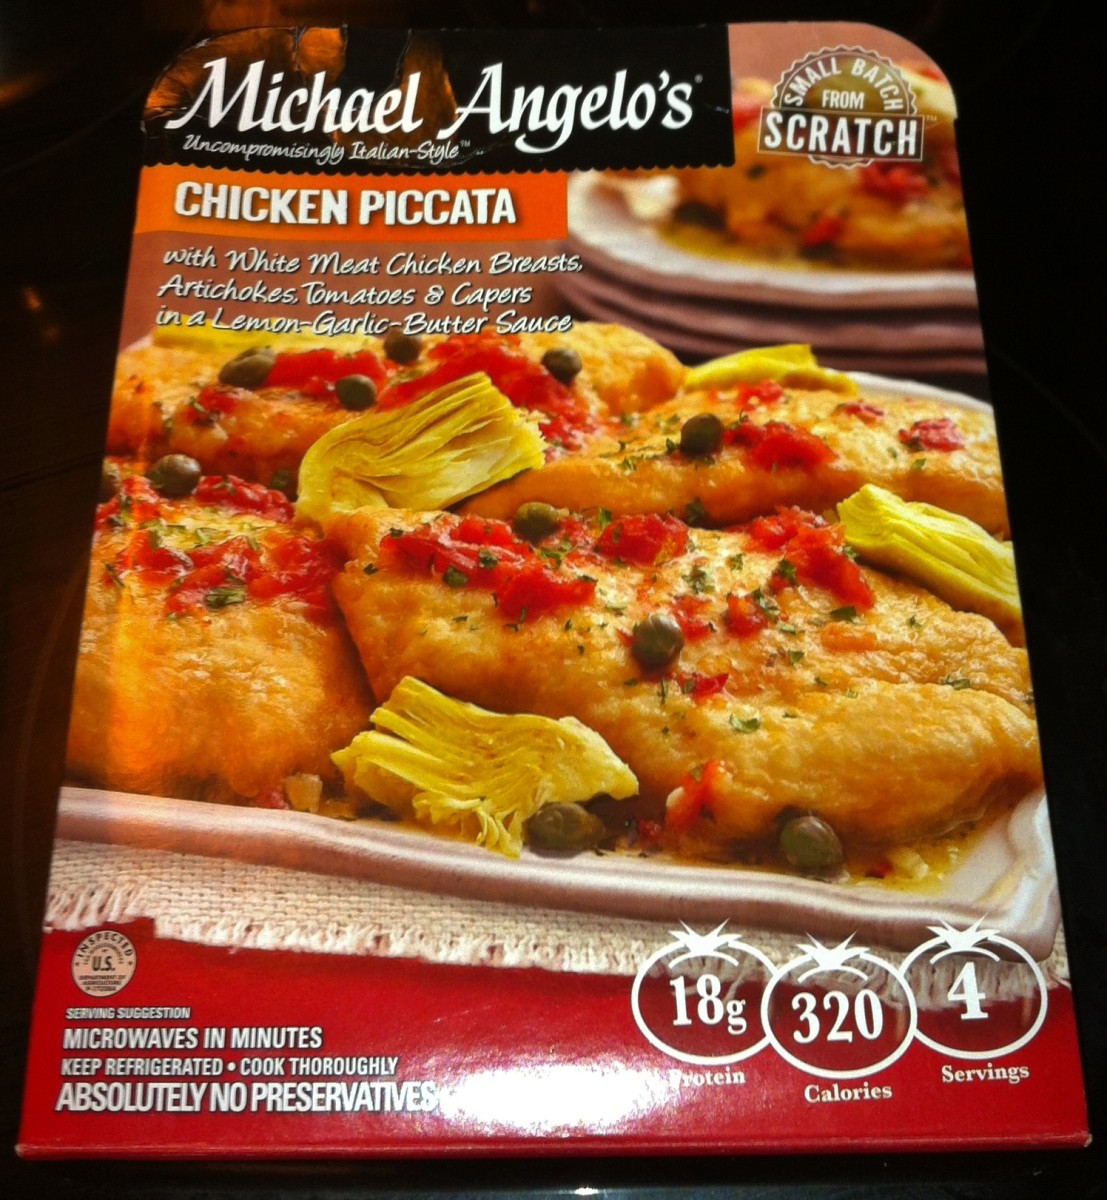 michael-angelos-chicken-piccata-product-review